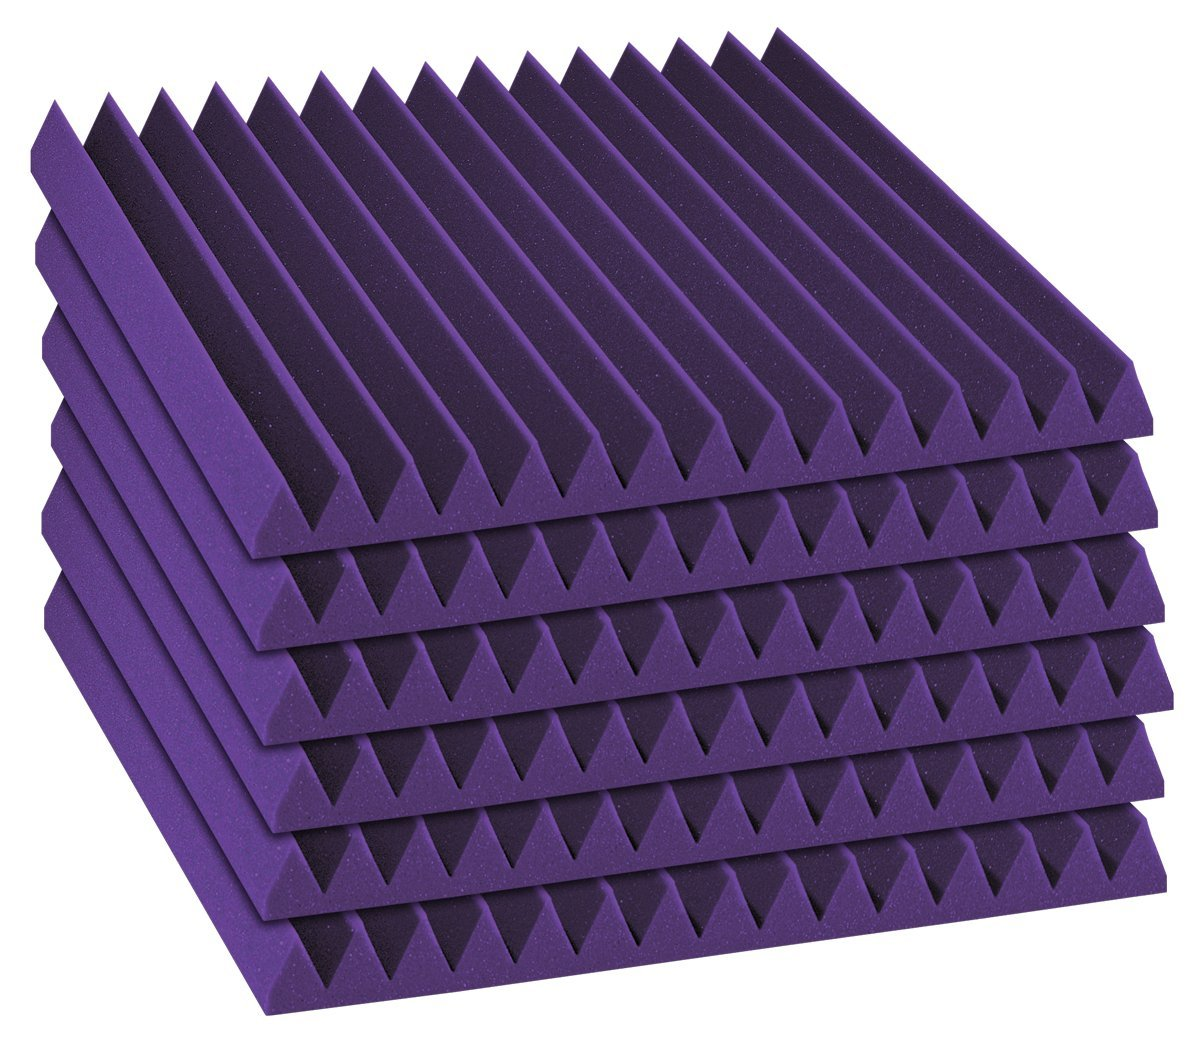 "Auralex Acoustics 2"" x 24"" x 24"" Sound Absorption Studiofoam Wedge Panels, Purple - 6 Pack AZ_2SF22PUR_6PK"